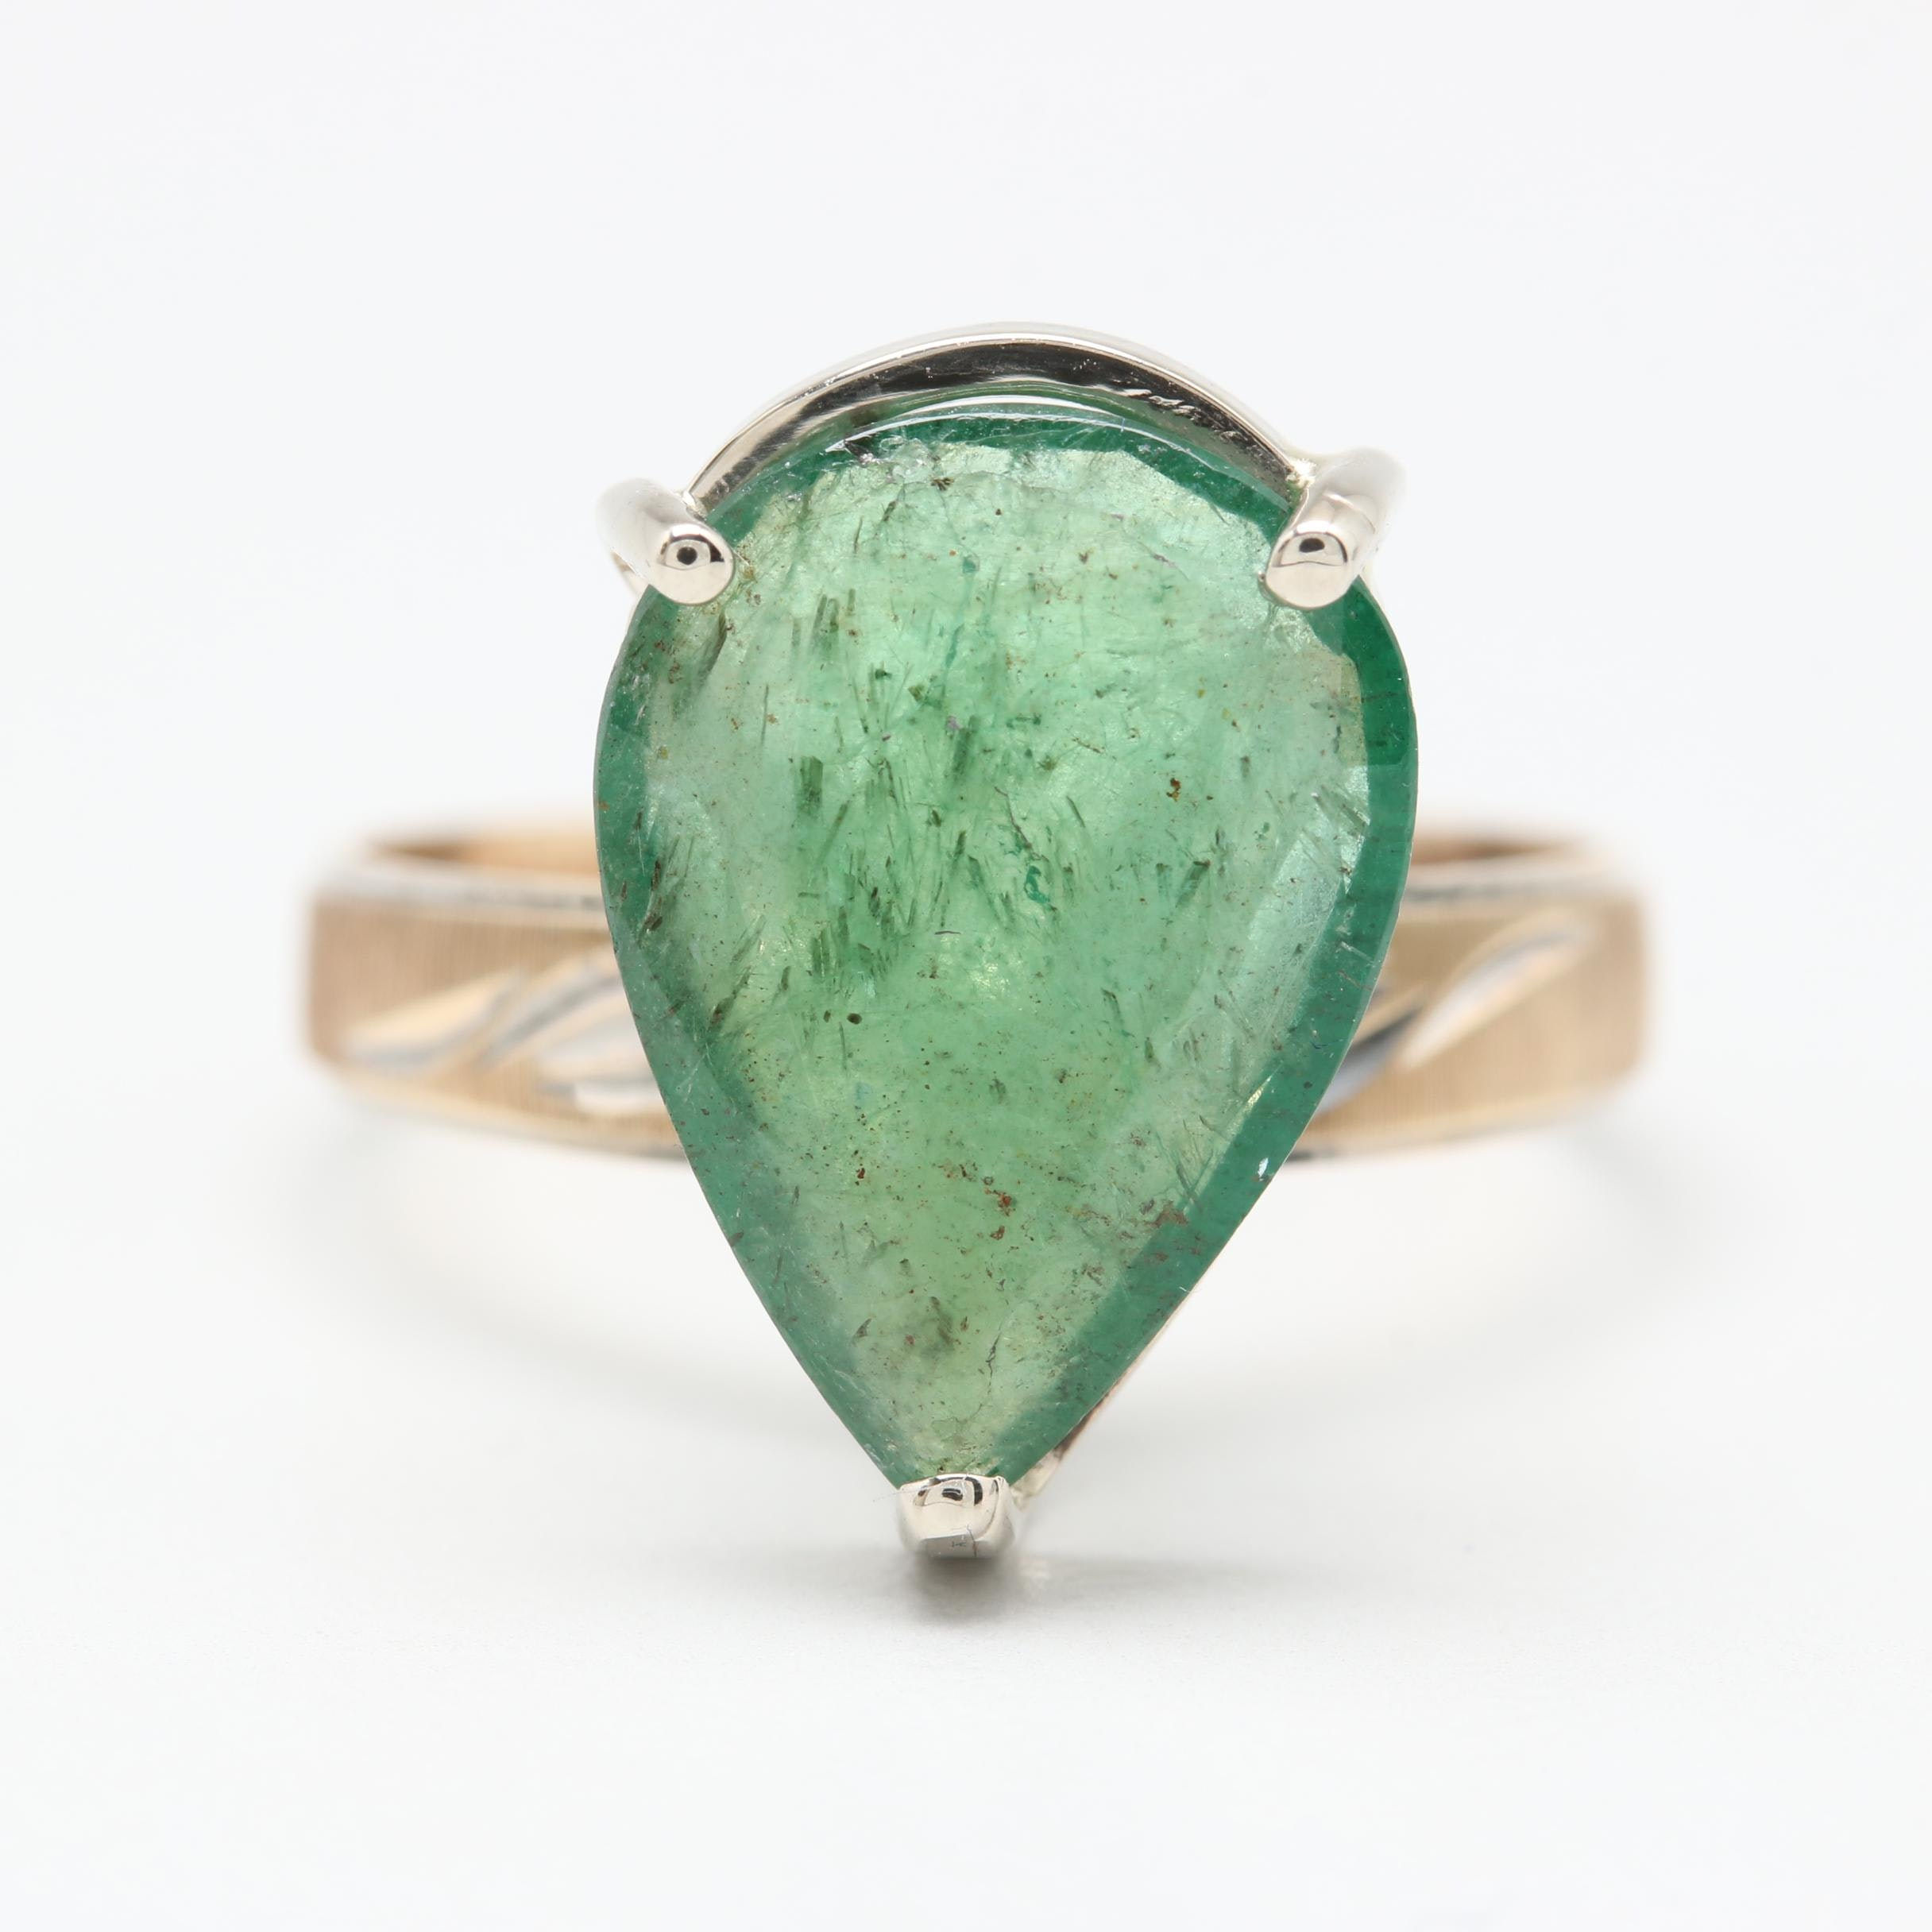 10K Yellow Gold 2.03 CT Emerald Ring with 14K White Gold Accents